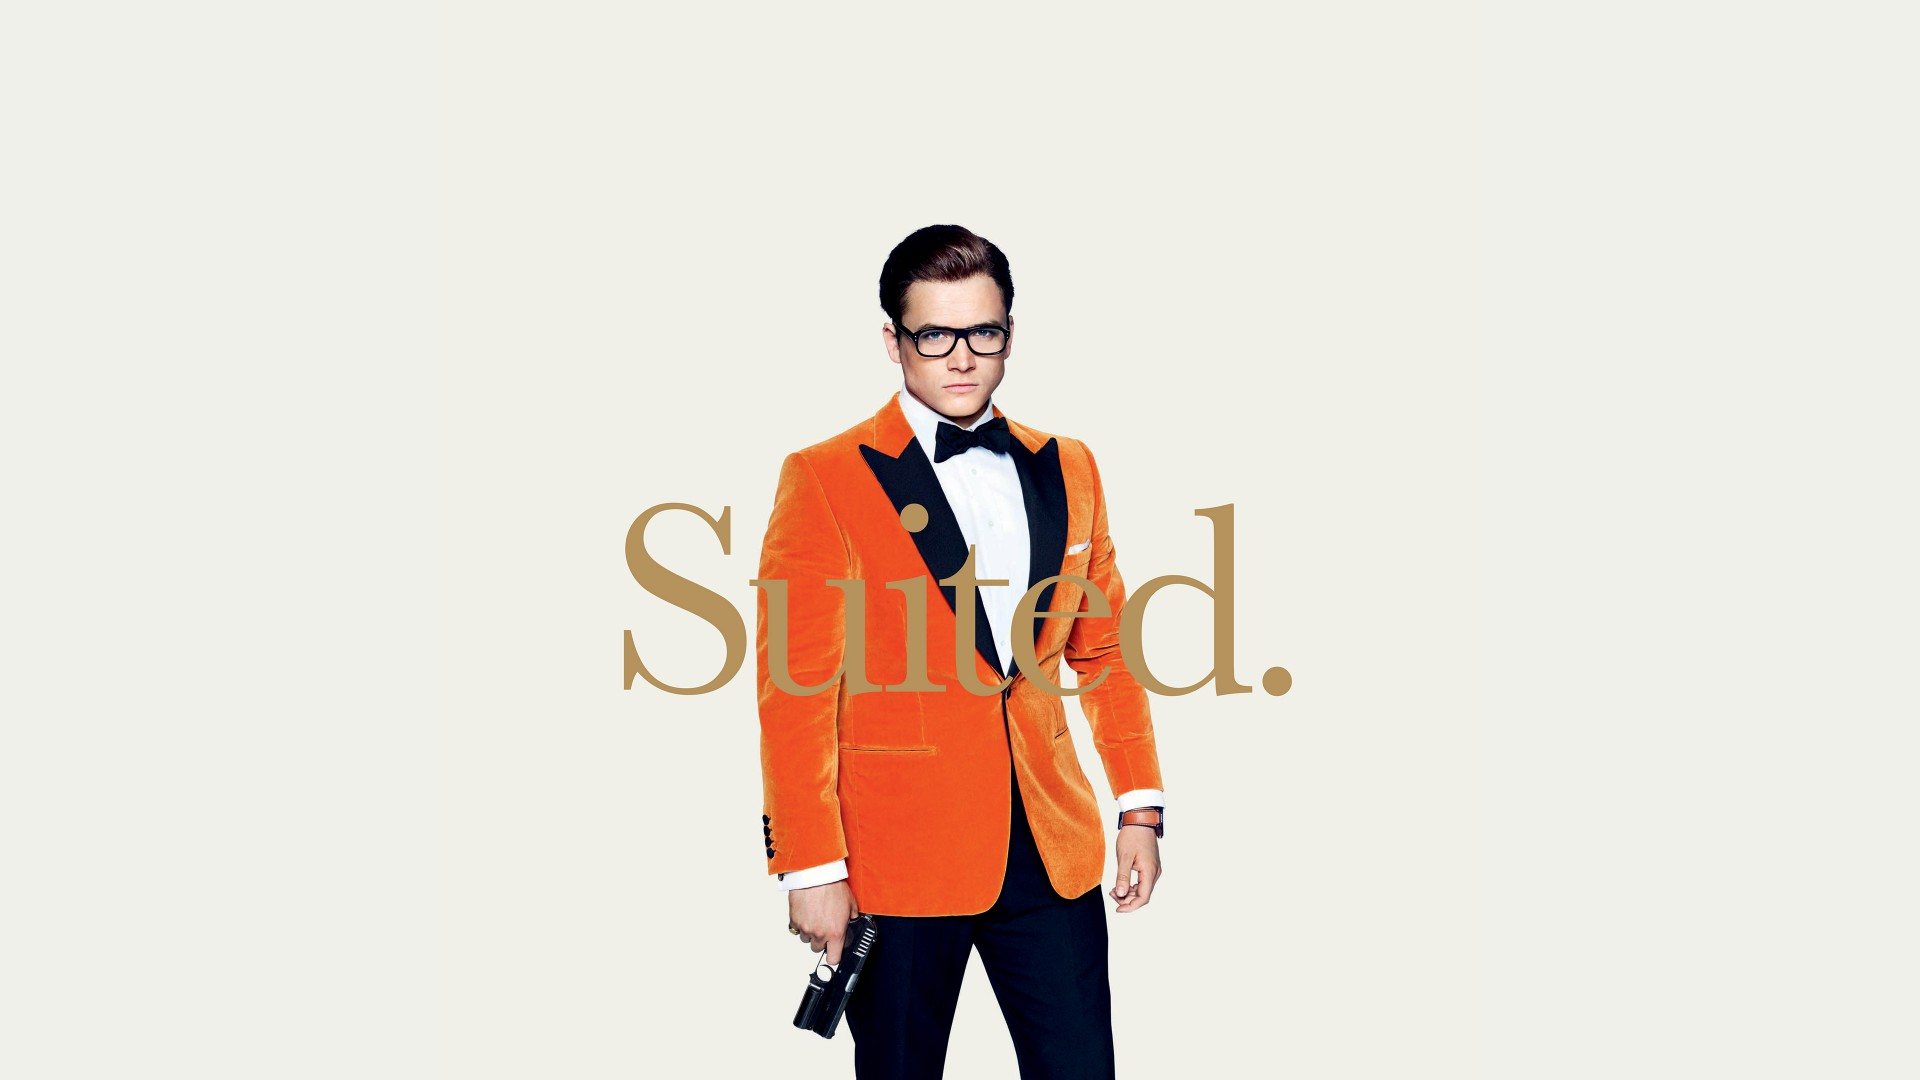 Kingsman The Golden Circle Wallpaper: Wallpaper Kingsman: The Golden Circle, Taron Egerton, 4k